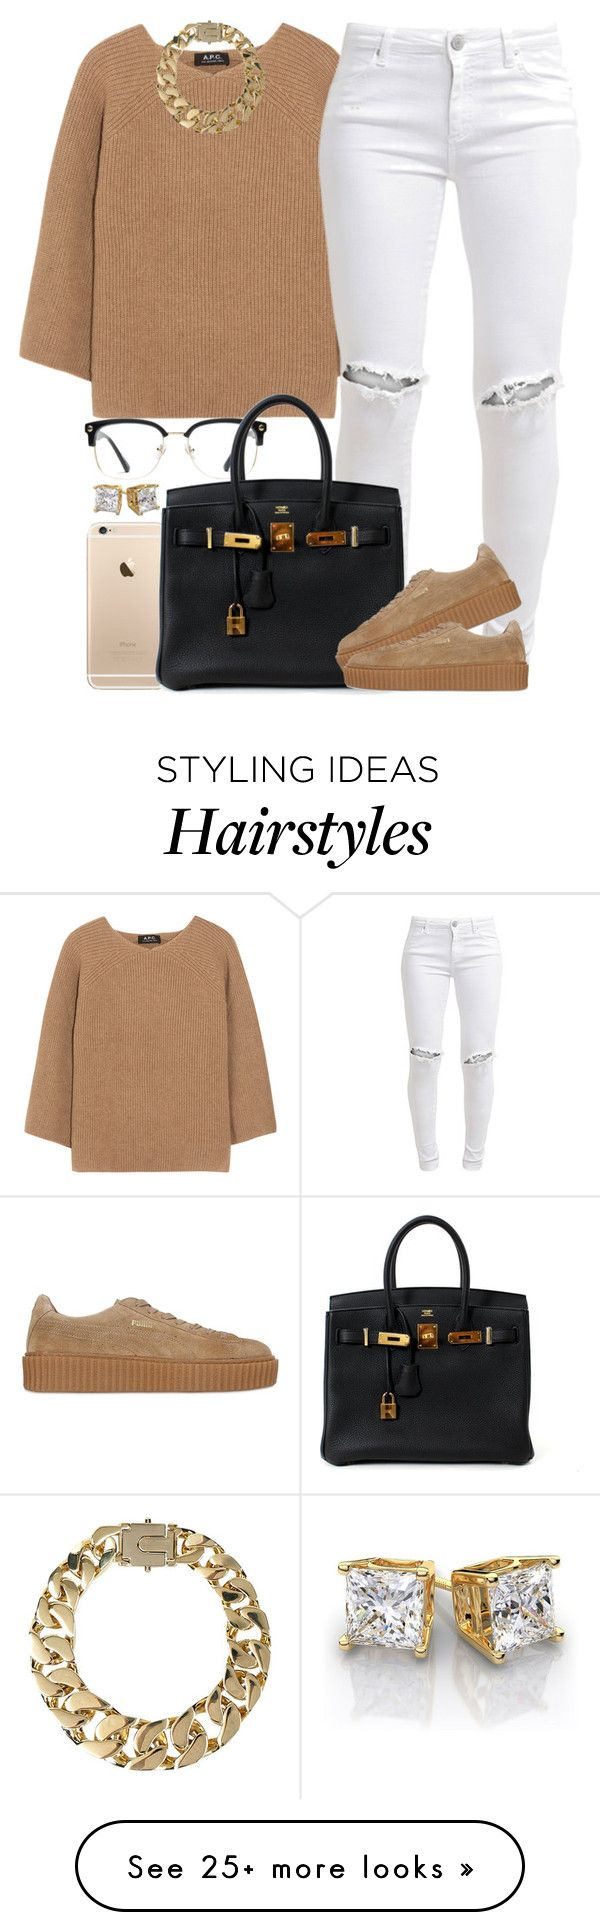 """""""Tan and Gold.✨"""" by livelifefreelyy on Polyvore featuring A.P.C., FiveUnits, GlassesUSA, Hermès, Puma and AllSaints"""